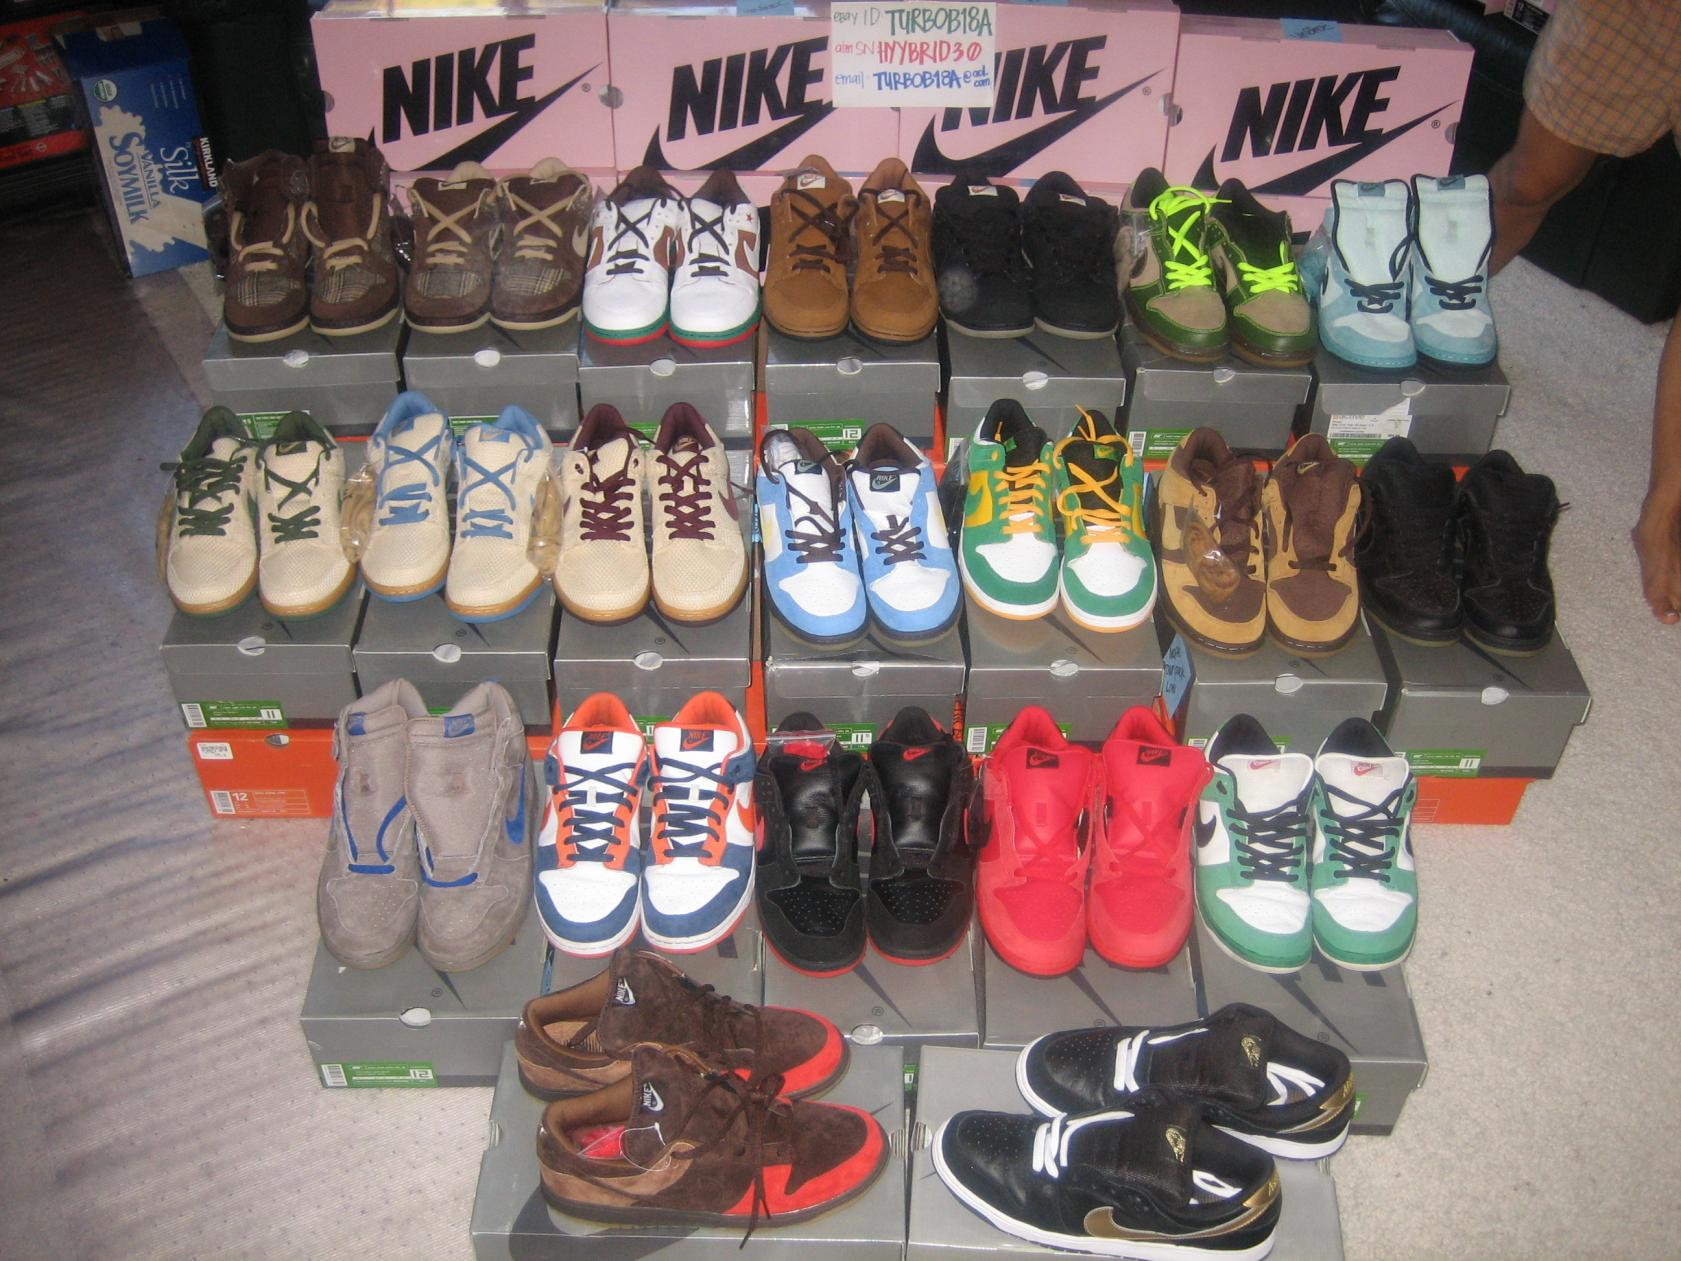 on sale b9c9b d5ee7 promo code for nike sb collection by c.ang 10 by jaysun bourne 8e687 10656  shopping attached images eb96e 42f7b